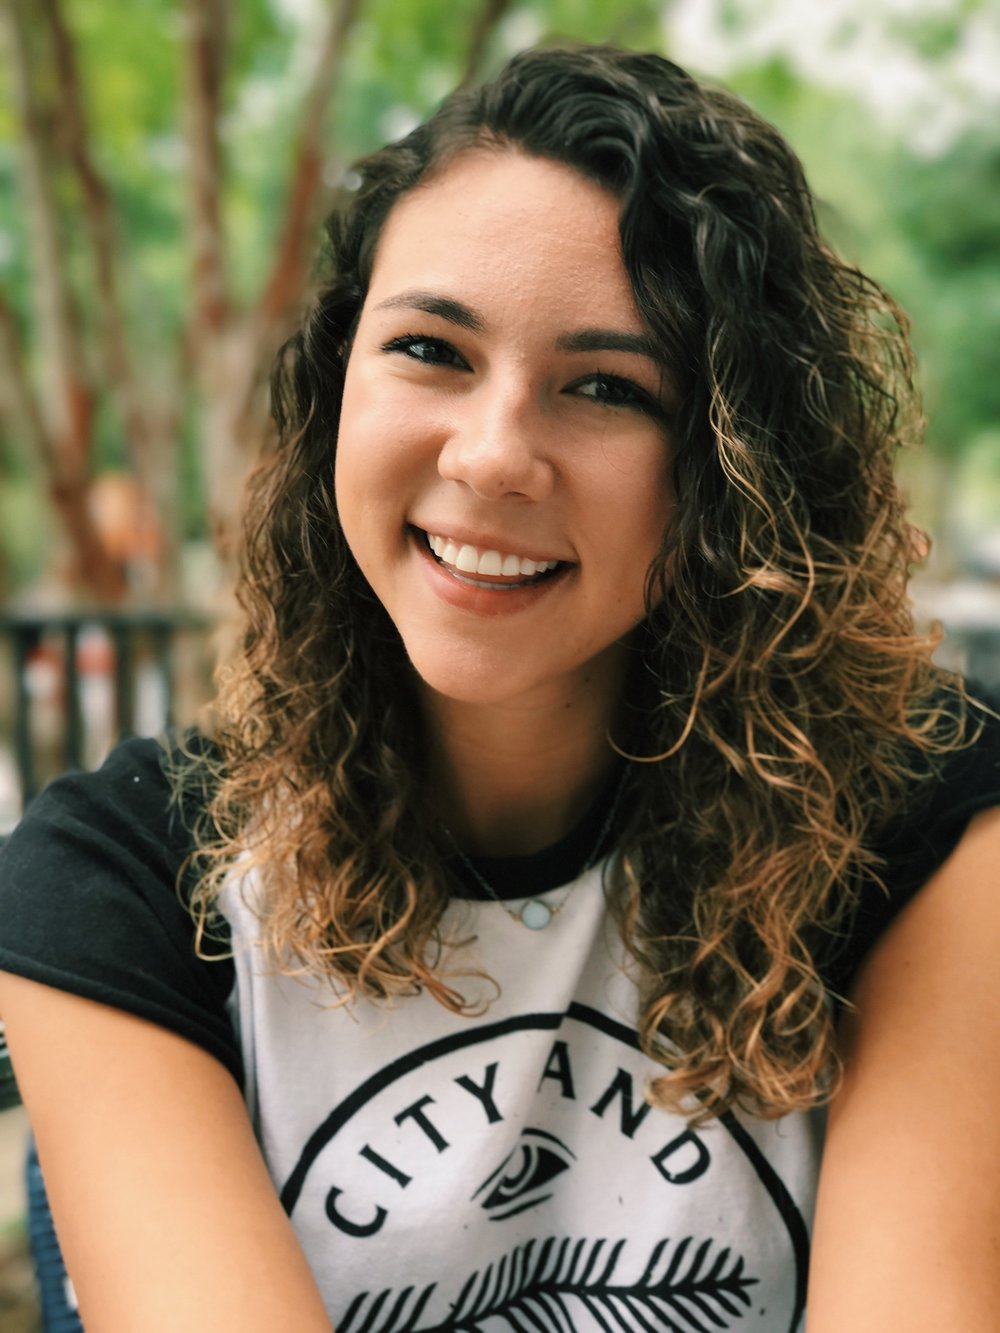 Emily Thomas is a writer in Atlanta who loves ice cream, mom jeans, and getting lost in the city. She's a Georgia State Panther and loves getting postcards.